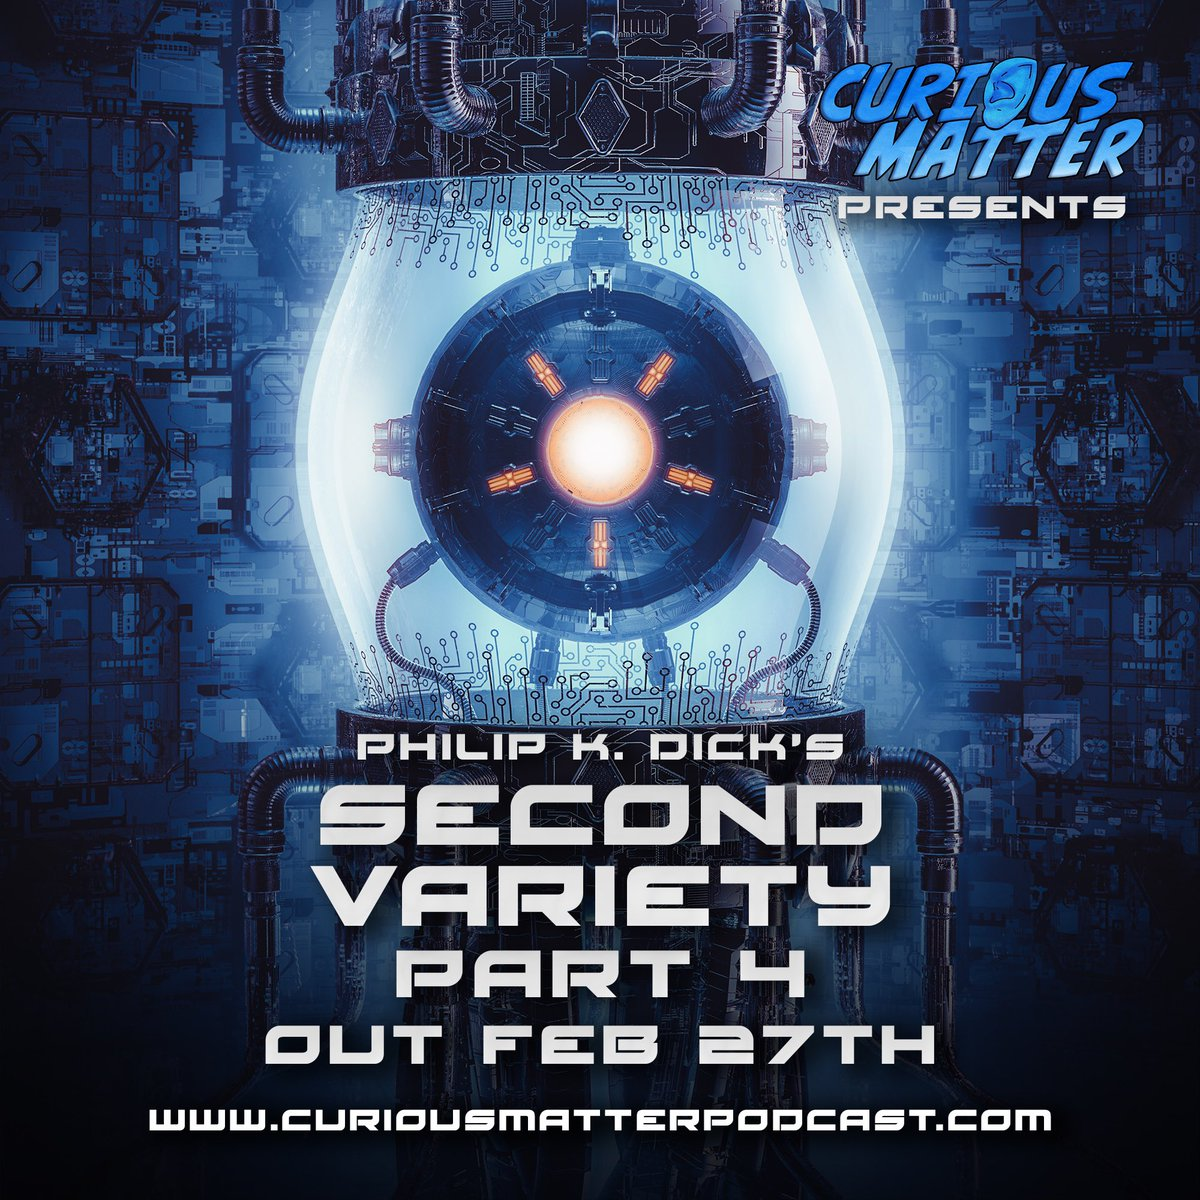 Part 4 of Second Variety by #philipkdick will be out on Feb 27th! I know we left you guys on a huge cliffhanger but it will be well worth the wait! #audiodrama #scifi #nospoilers http://www.cusiousmatterpodcast.compic.twitter.com/skmhnWgzbf